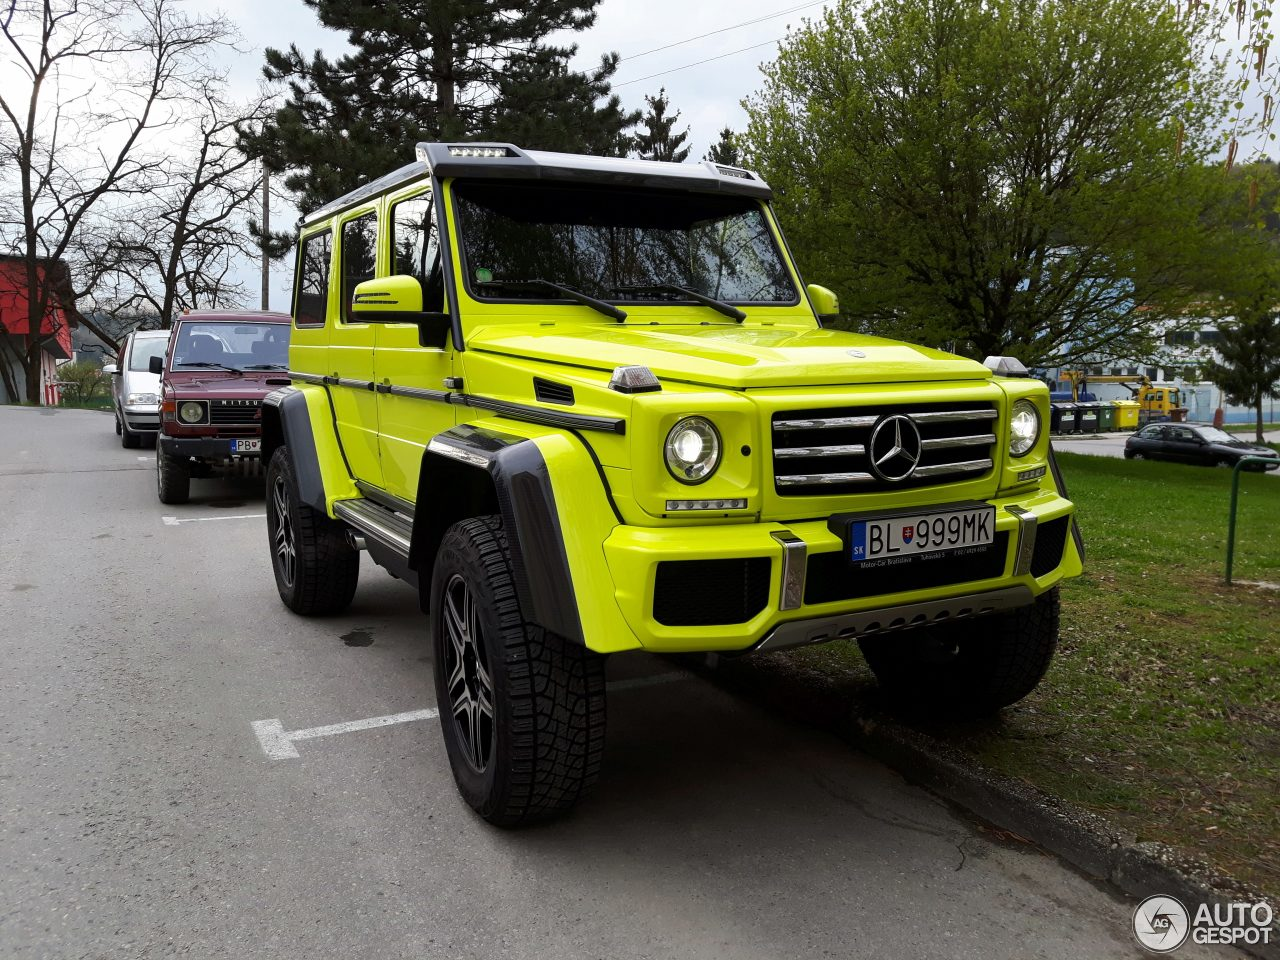 Mercedes benz g 500 4x4 8 may 2017 autogespot for Mercedes benz 500 2017